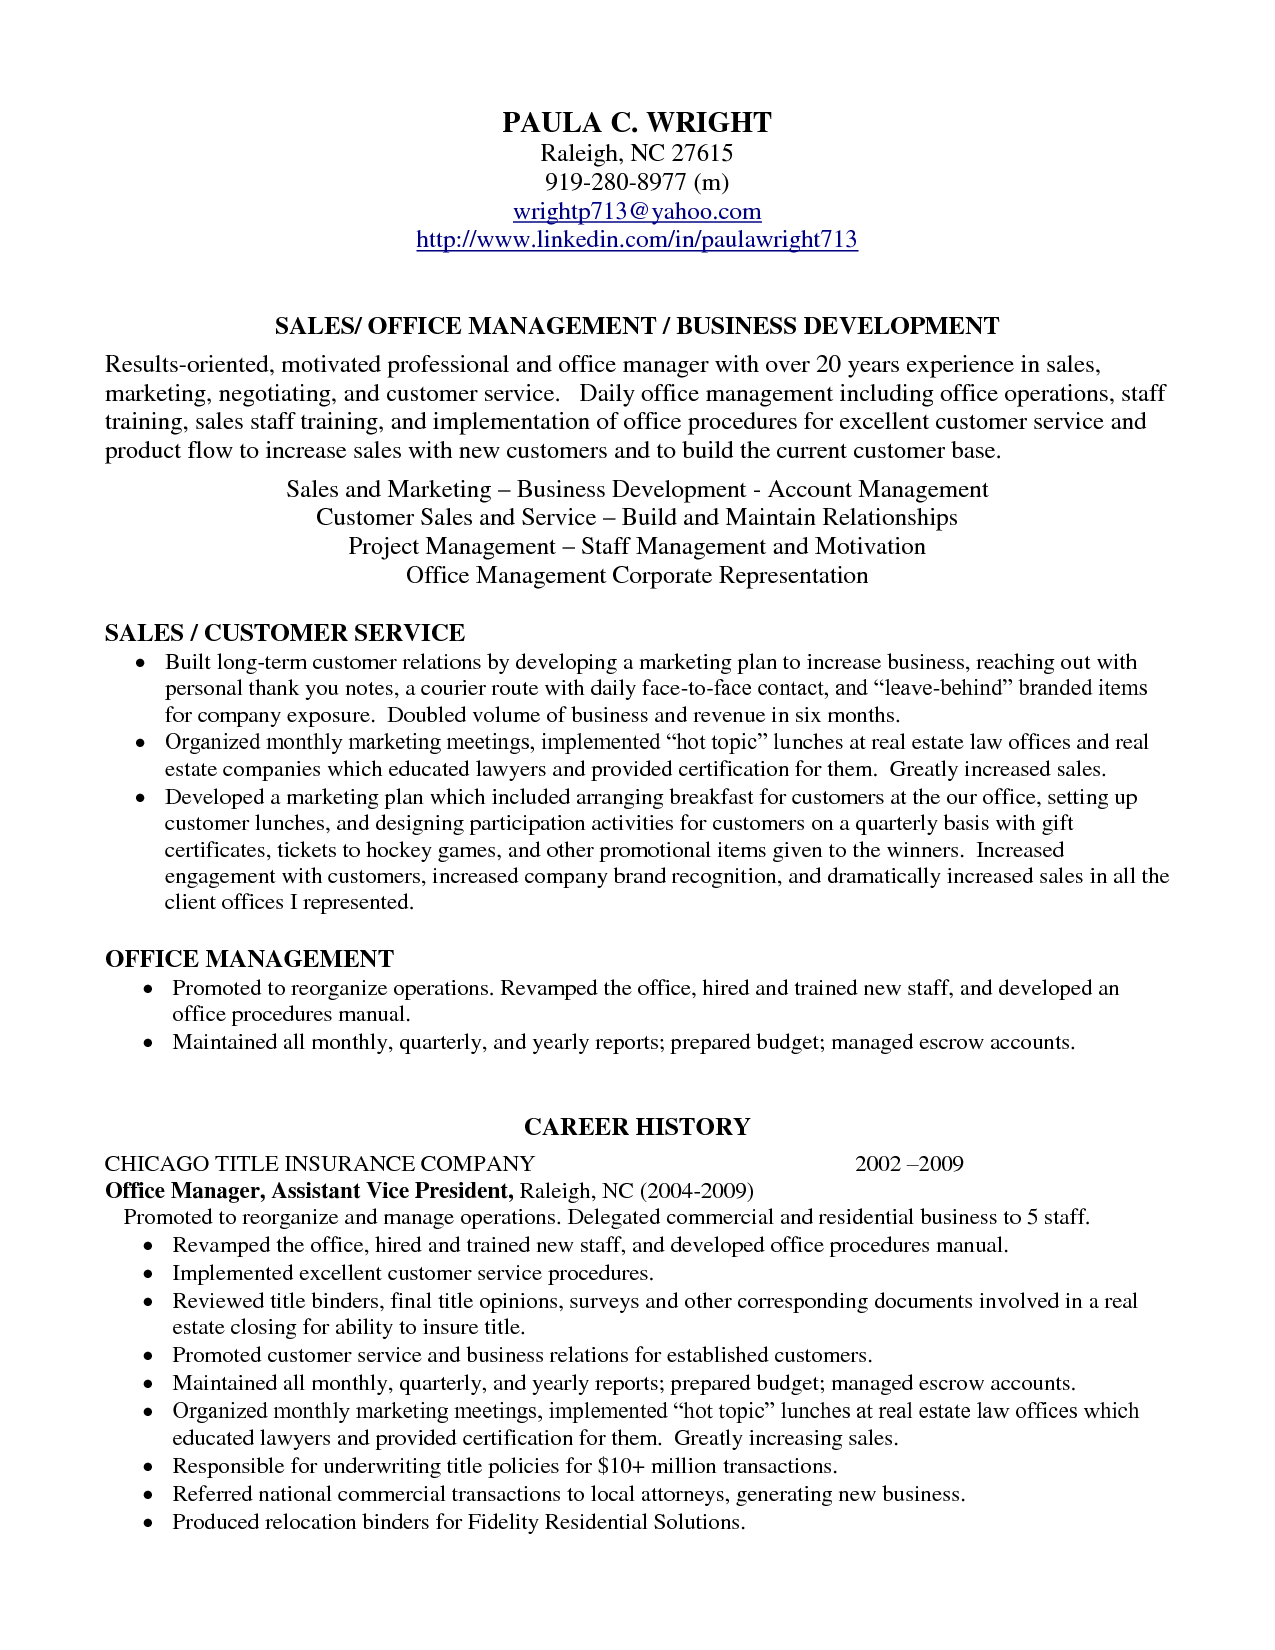 best images about resumes letters etc 17 best images about resumes letters etc professional resume creative resume and cover letters